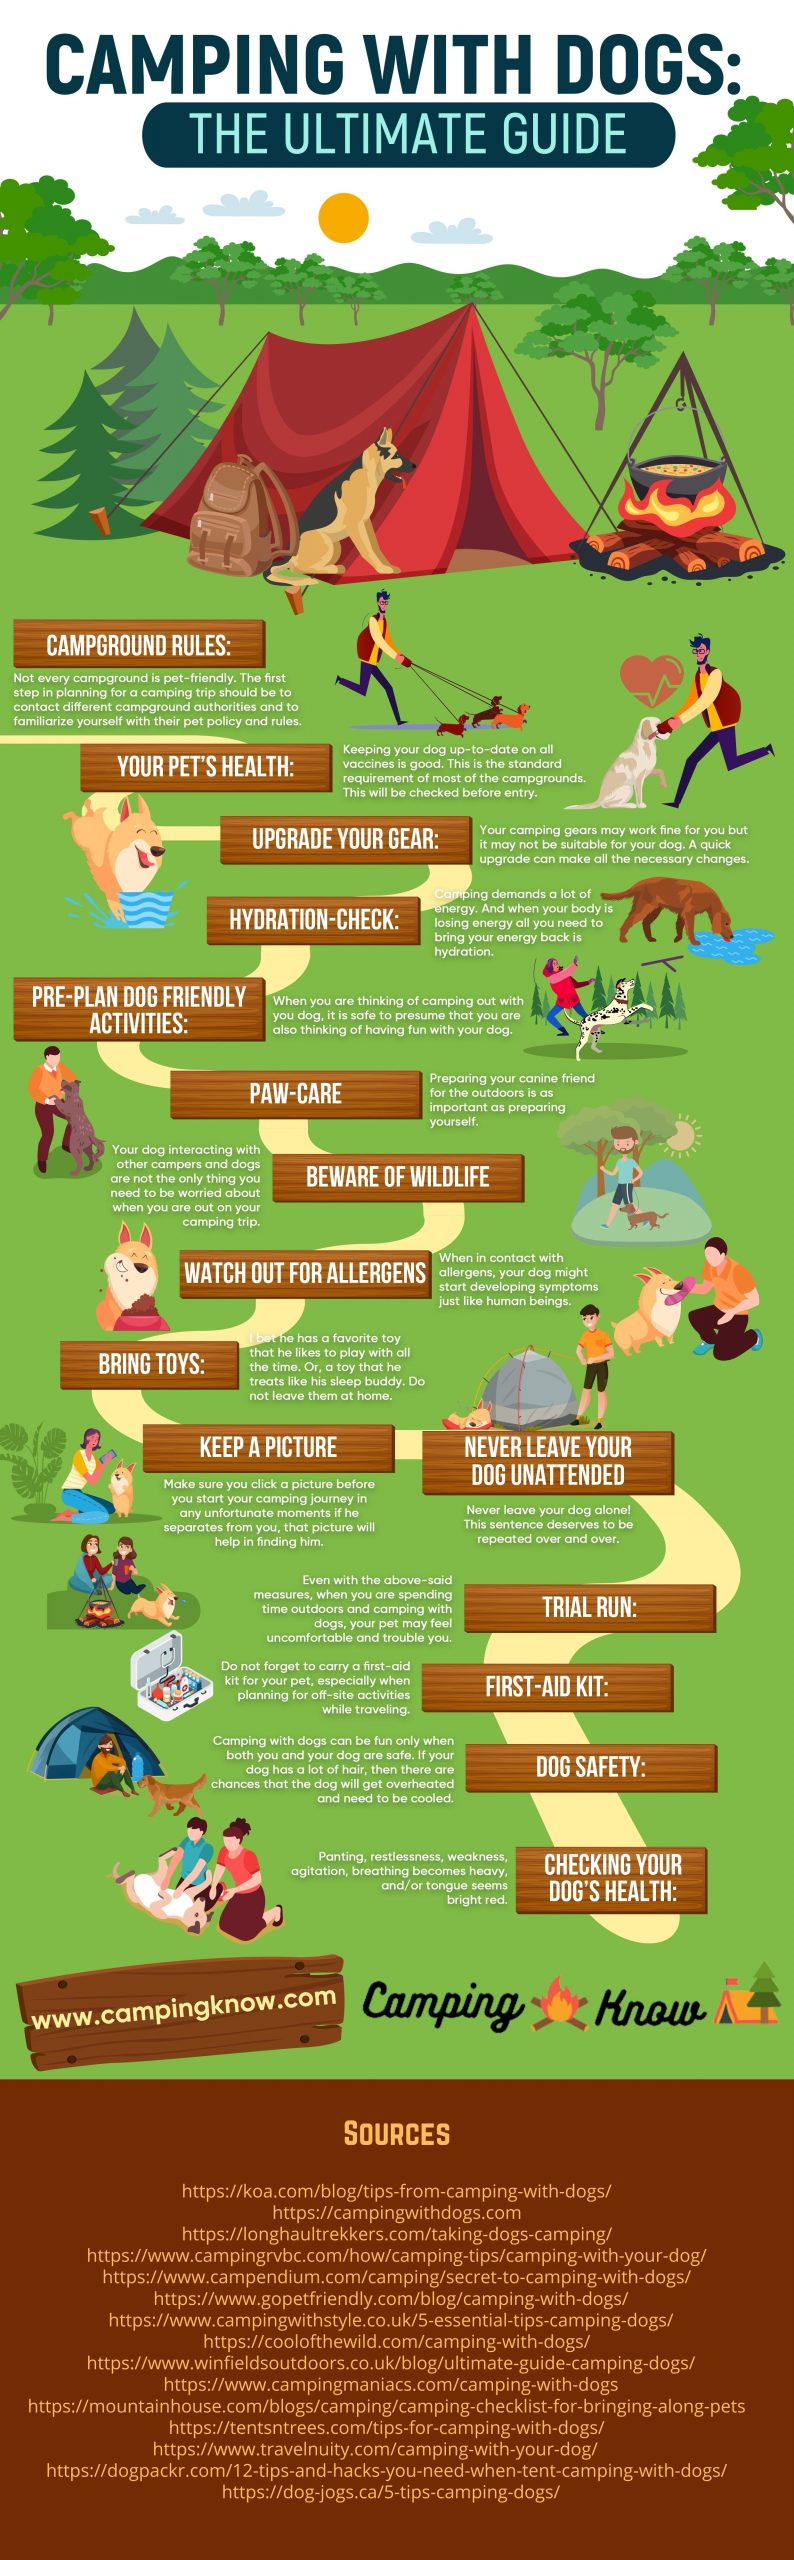 Camping With Dogs Infographic